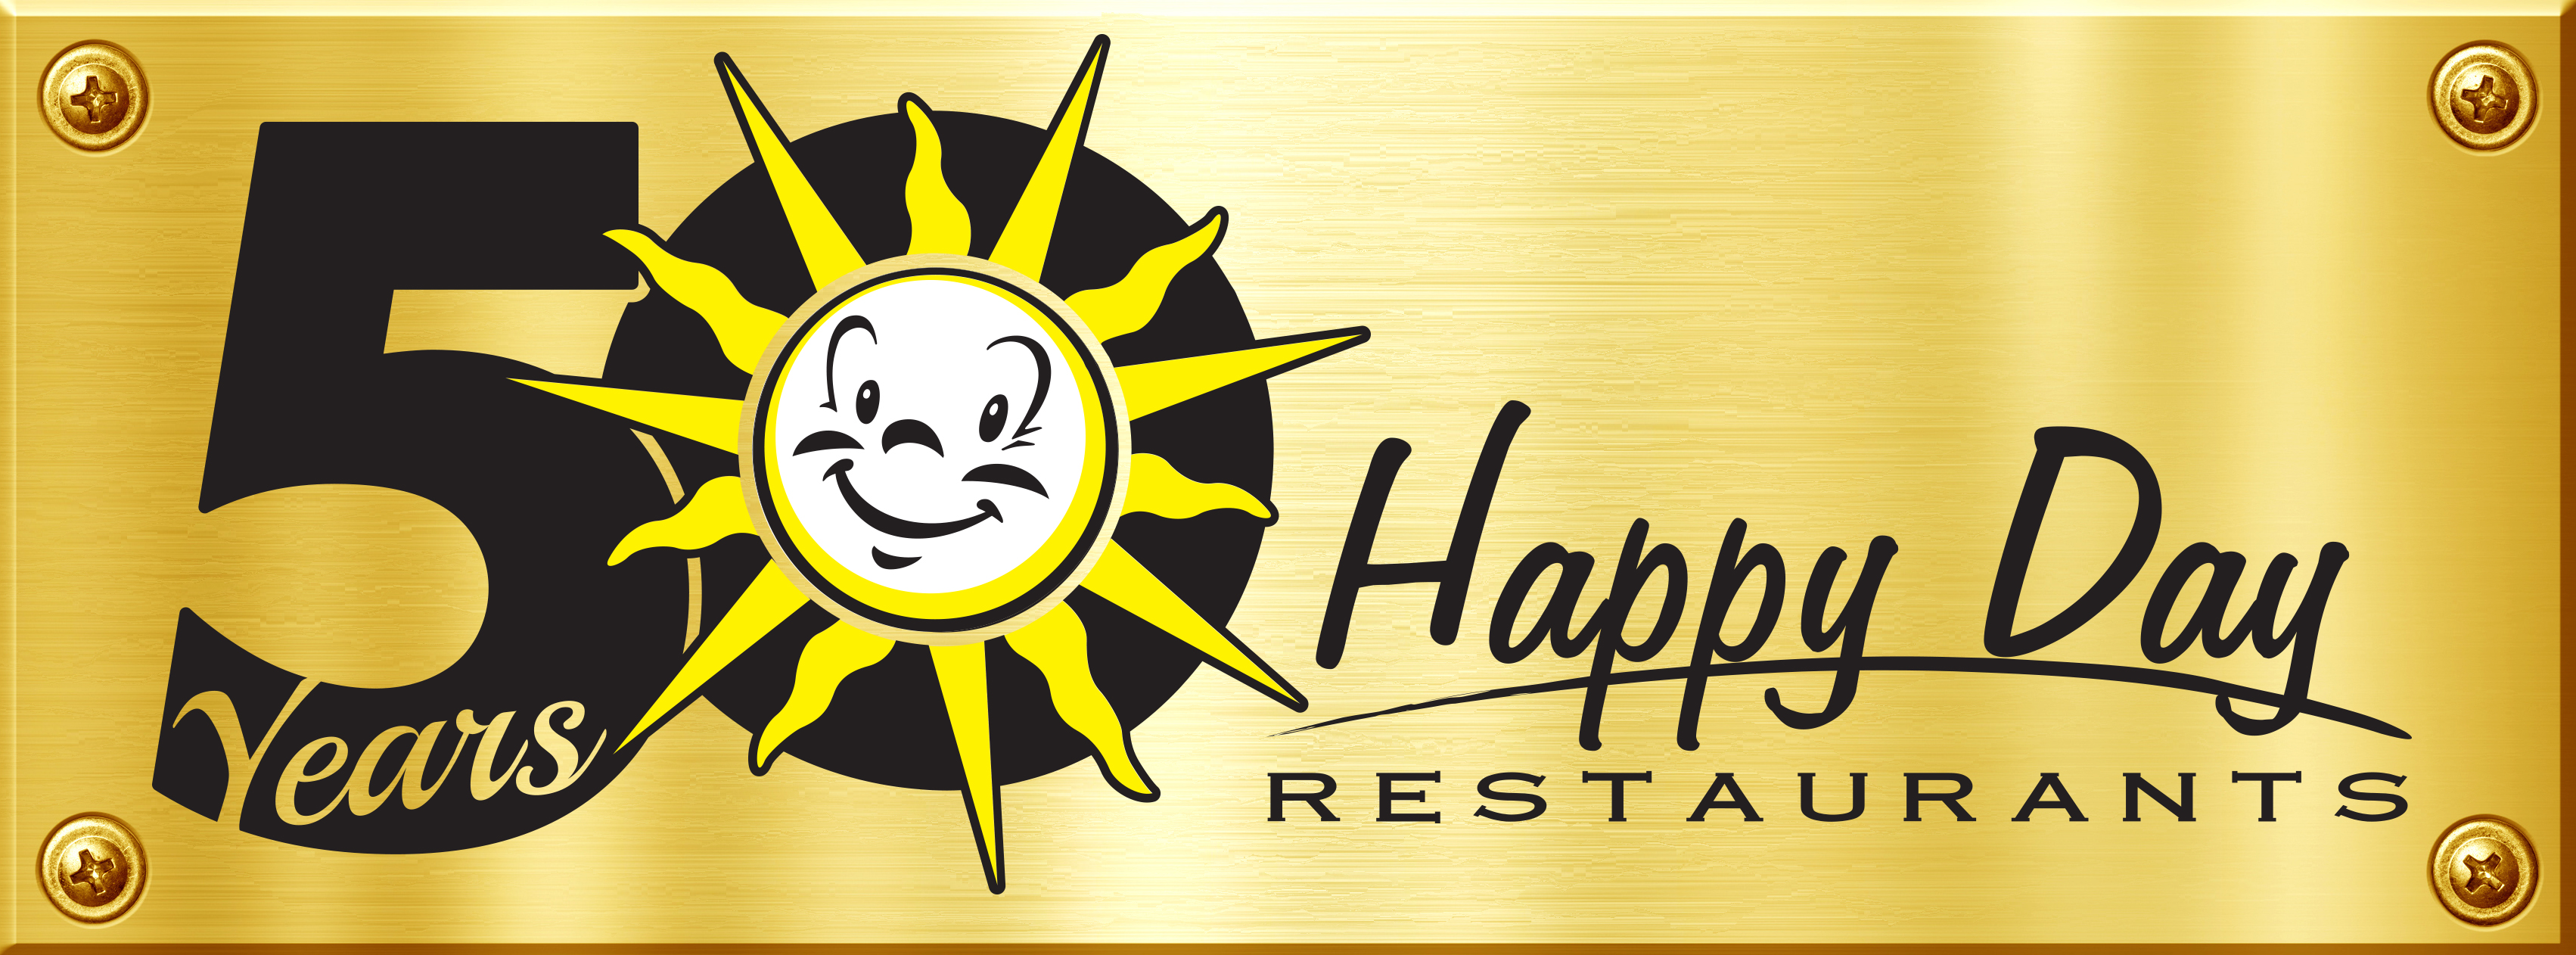 Happy Day Restaurants